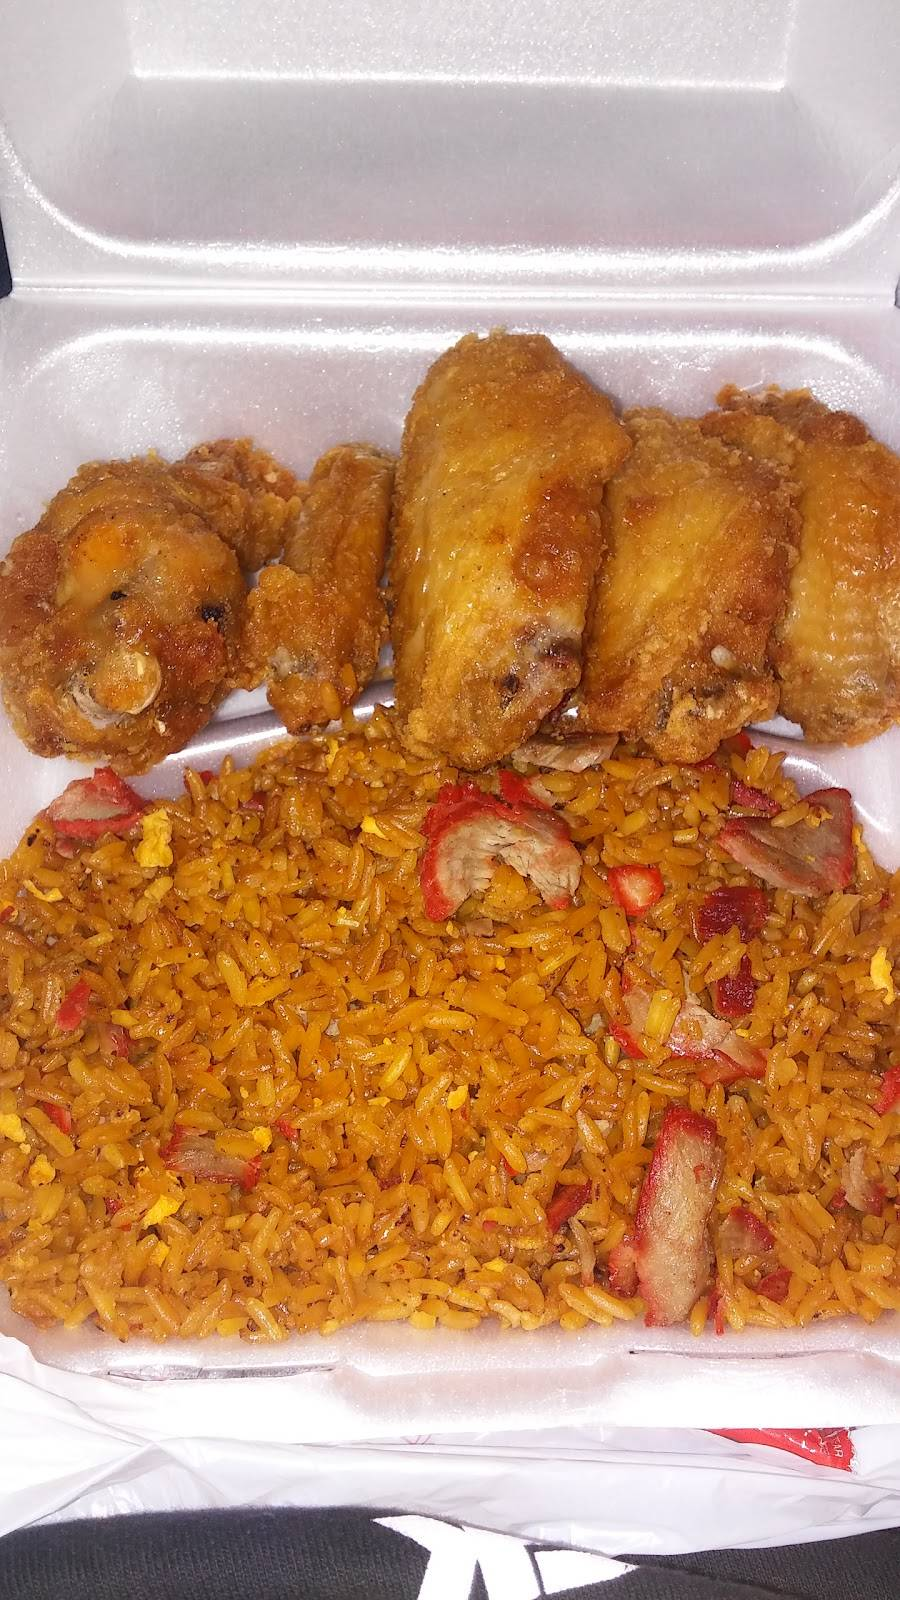 Fried Rice And Wings | meal delivery | 1541 W Blue Heron Blvd, Riviera Beach, FL 33404, USA | 5618441119 OR +1 561-844-1119